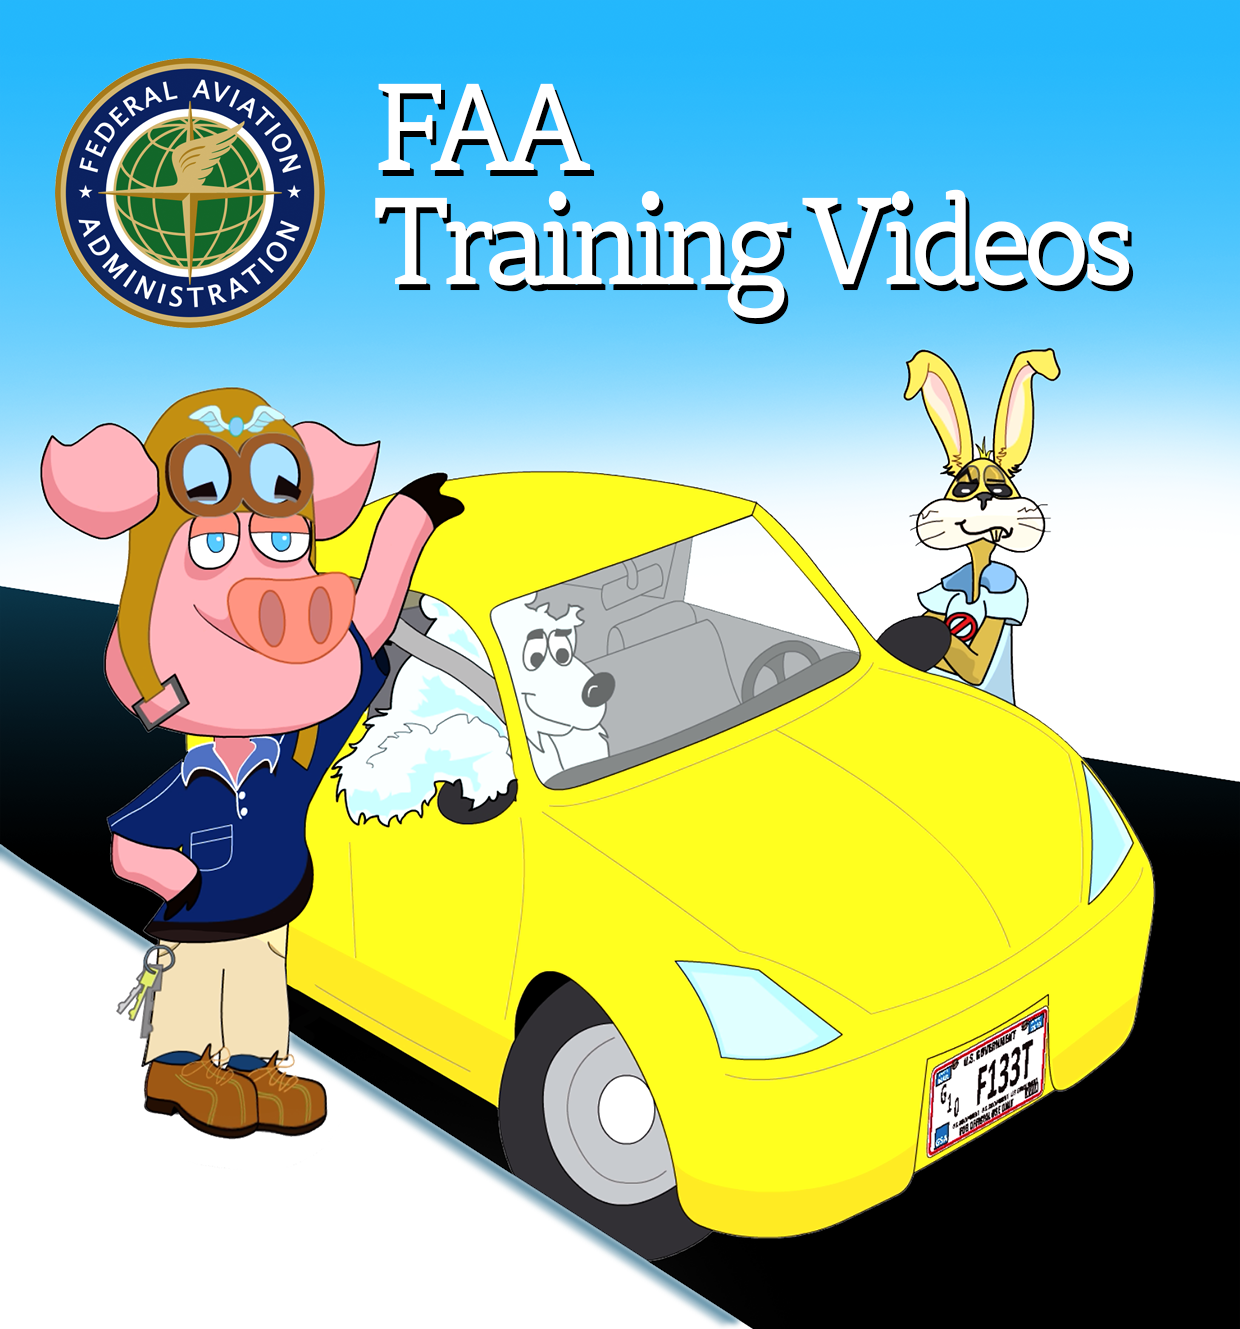 Training Videos FAA: Green Traveling Tips